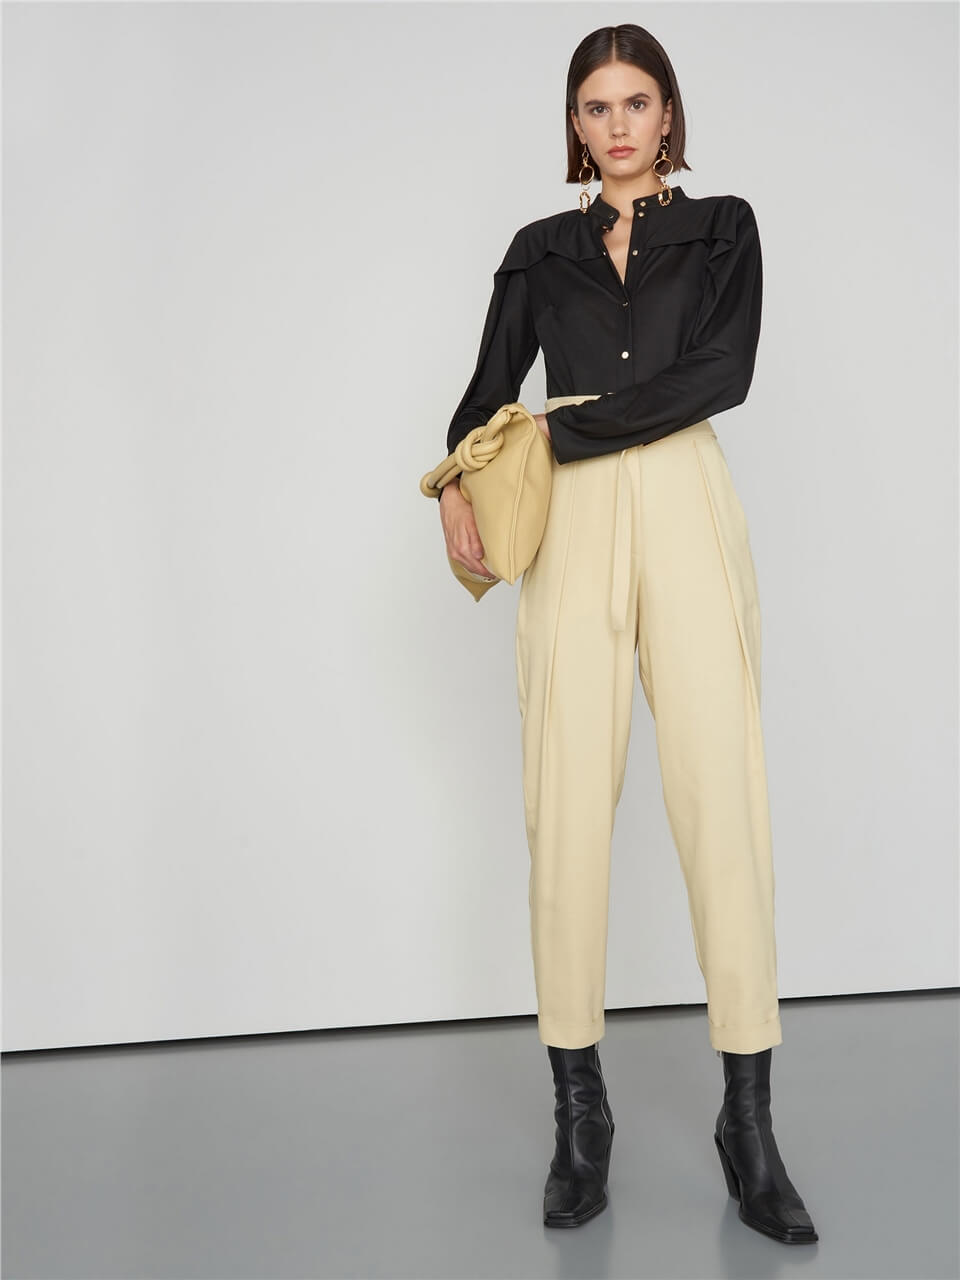 BEIGE HIGH WAIST PANTS